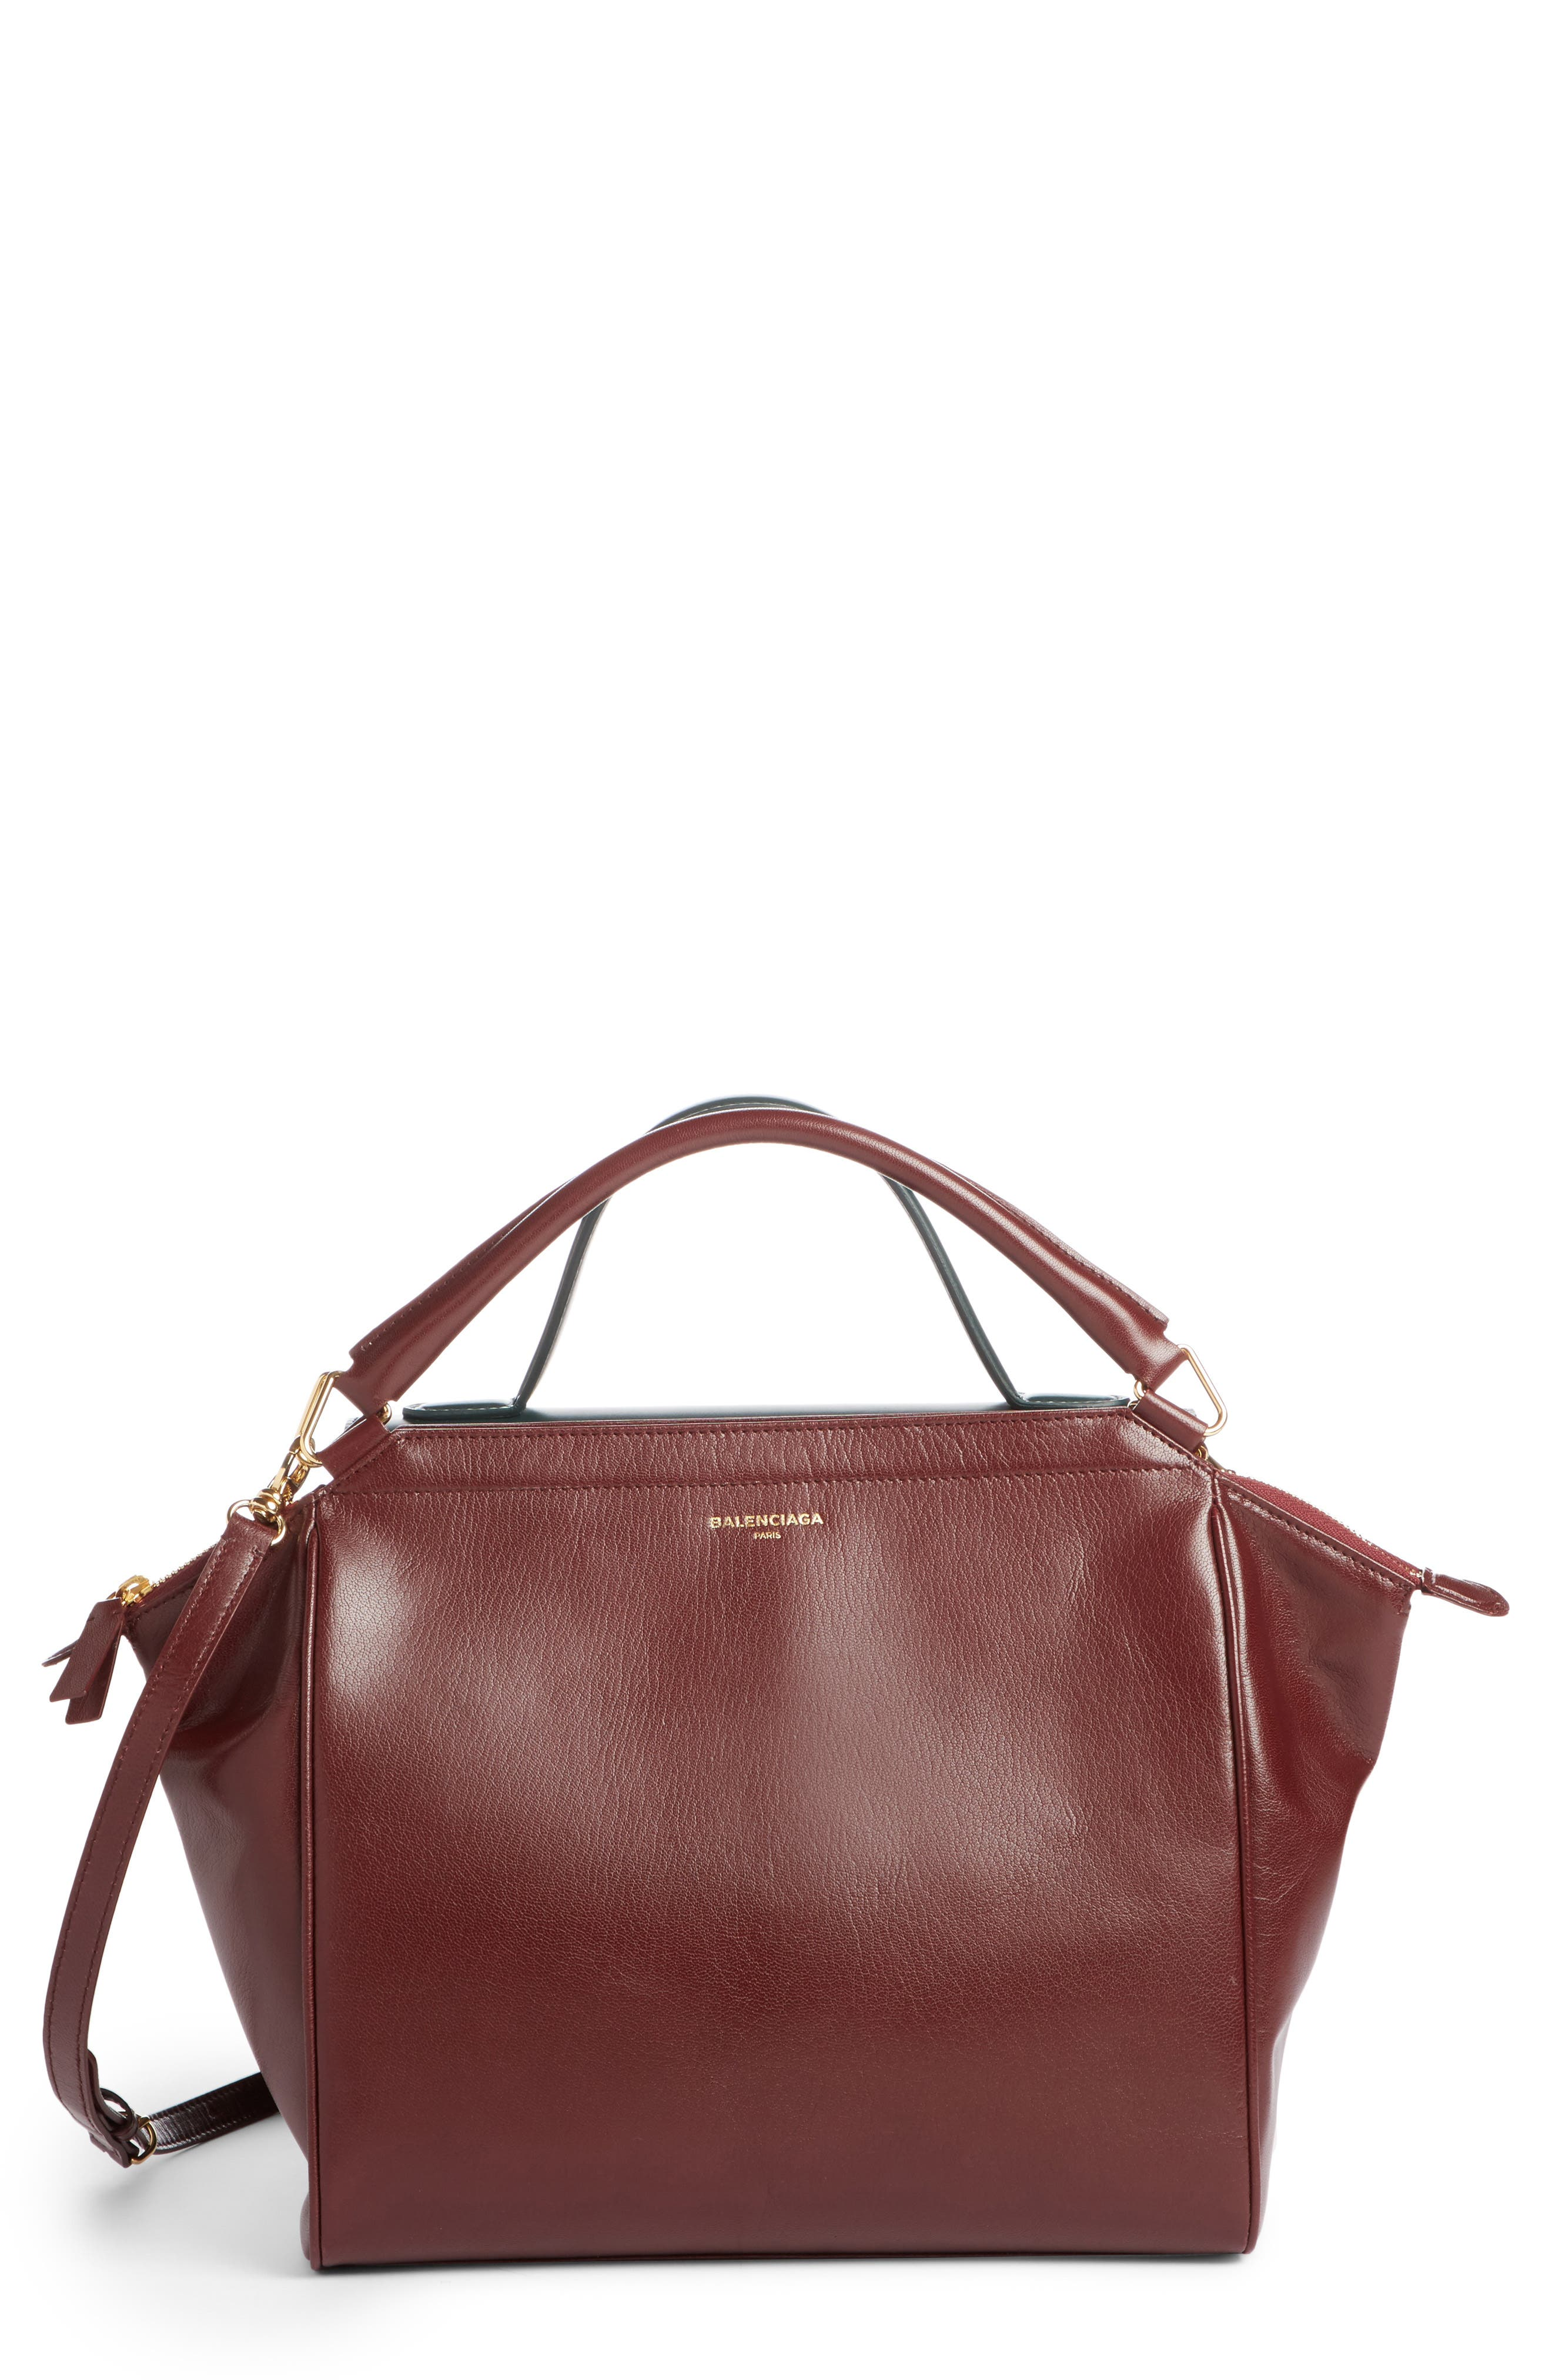 Collage Double Calfskin Leather Bag,                             Main thumbnail 1, color,                             641